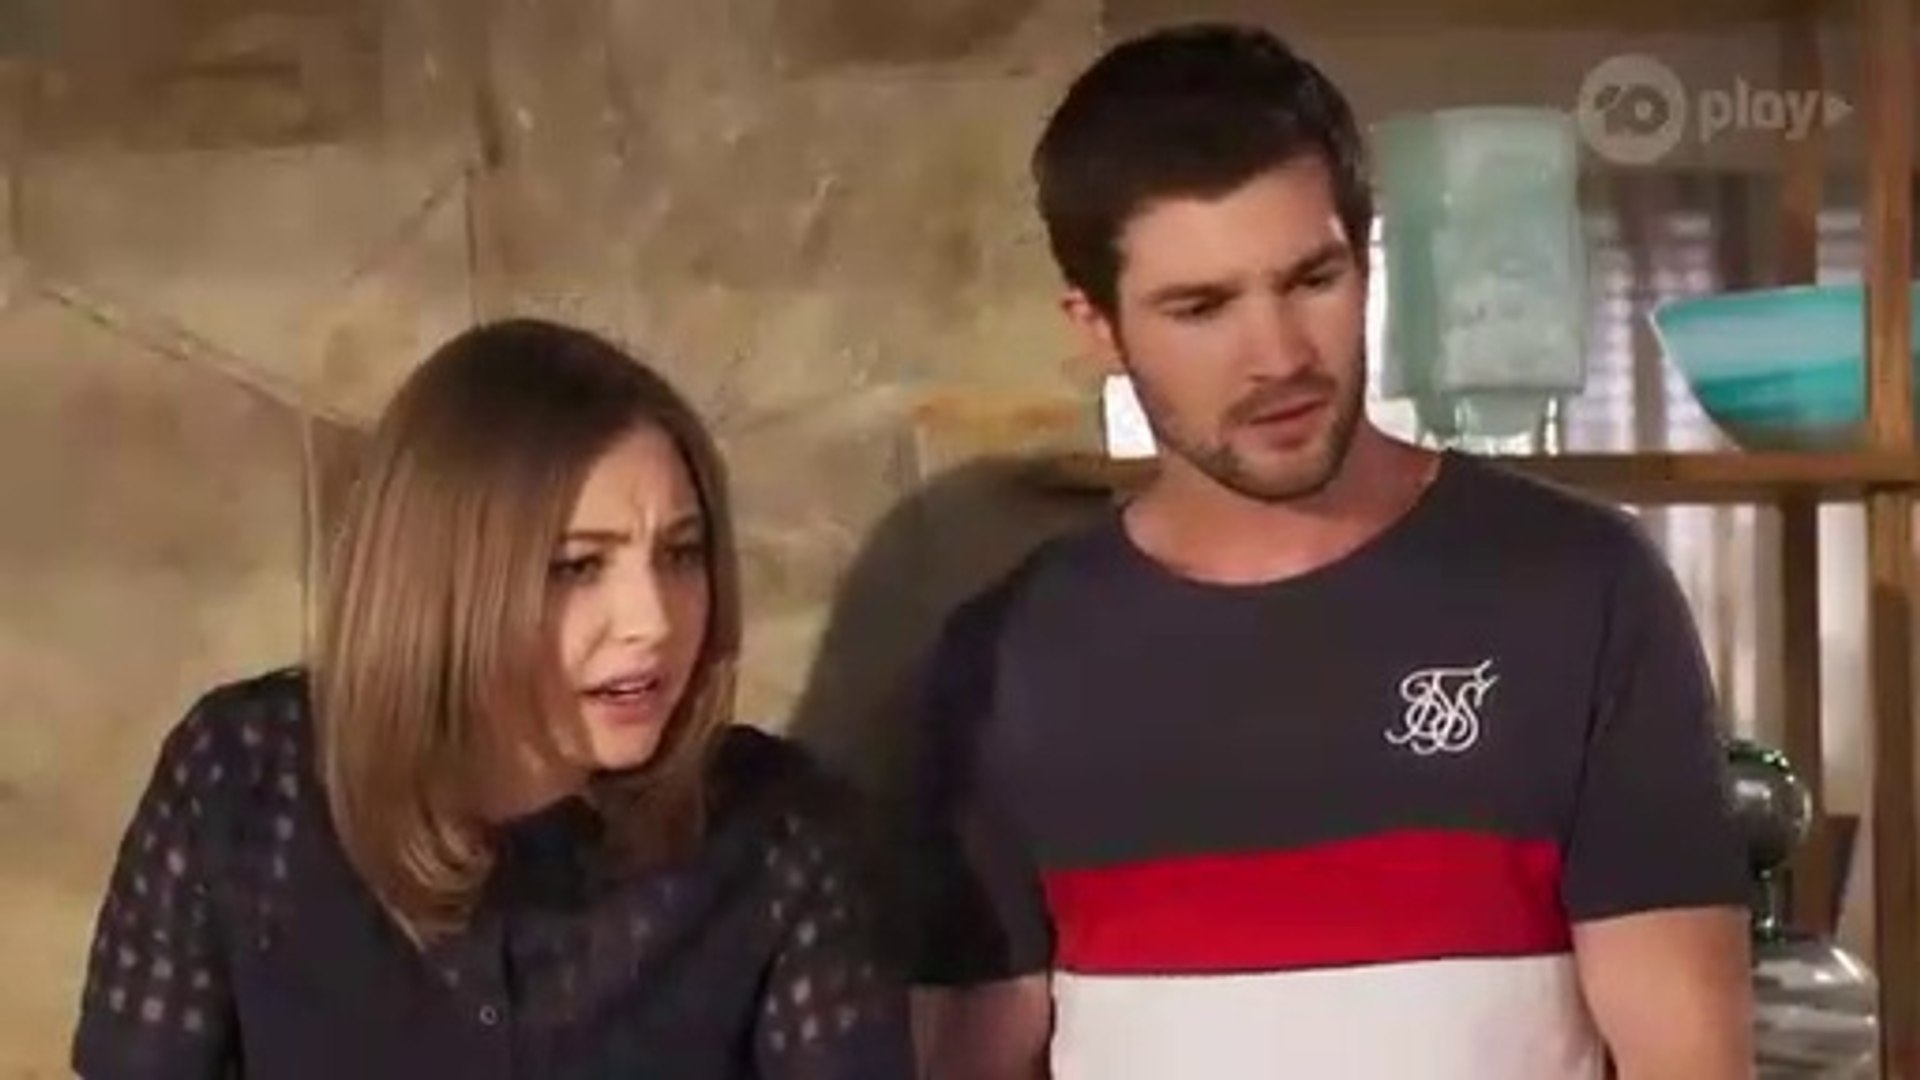 Neighbours 8061 - 18th March 2019 - monday